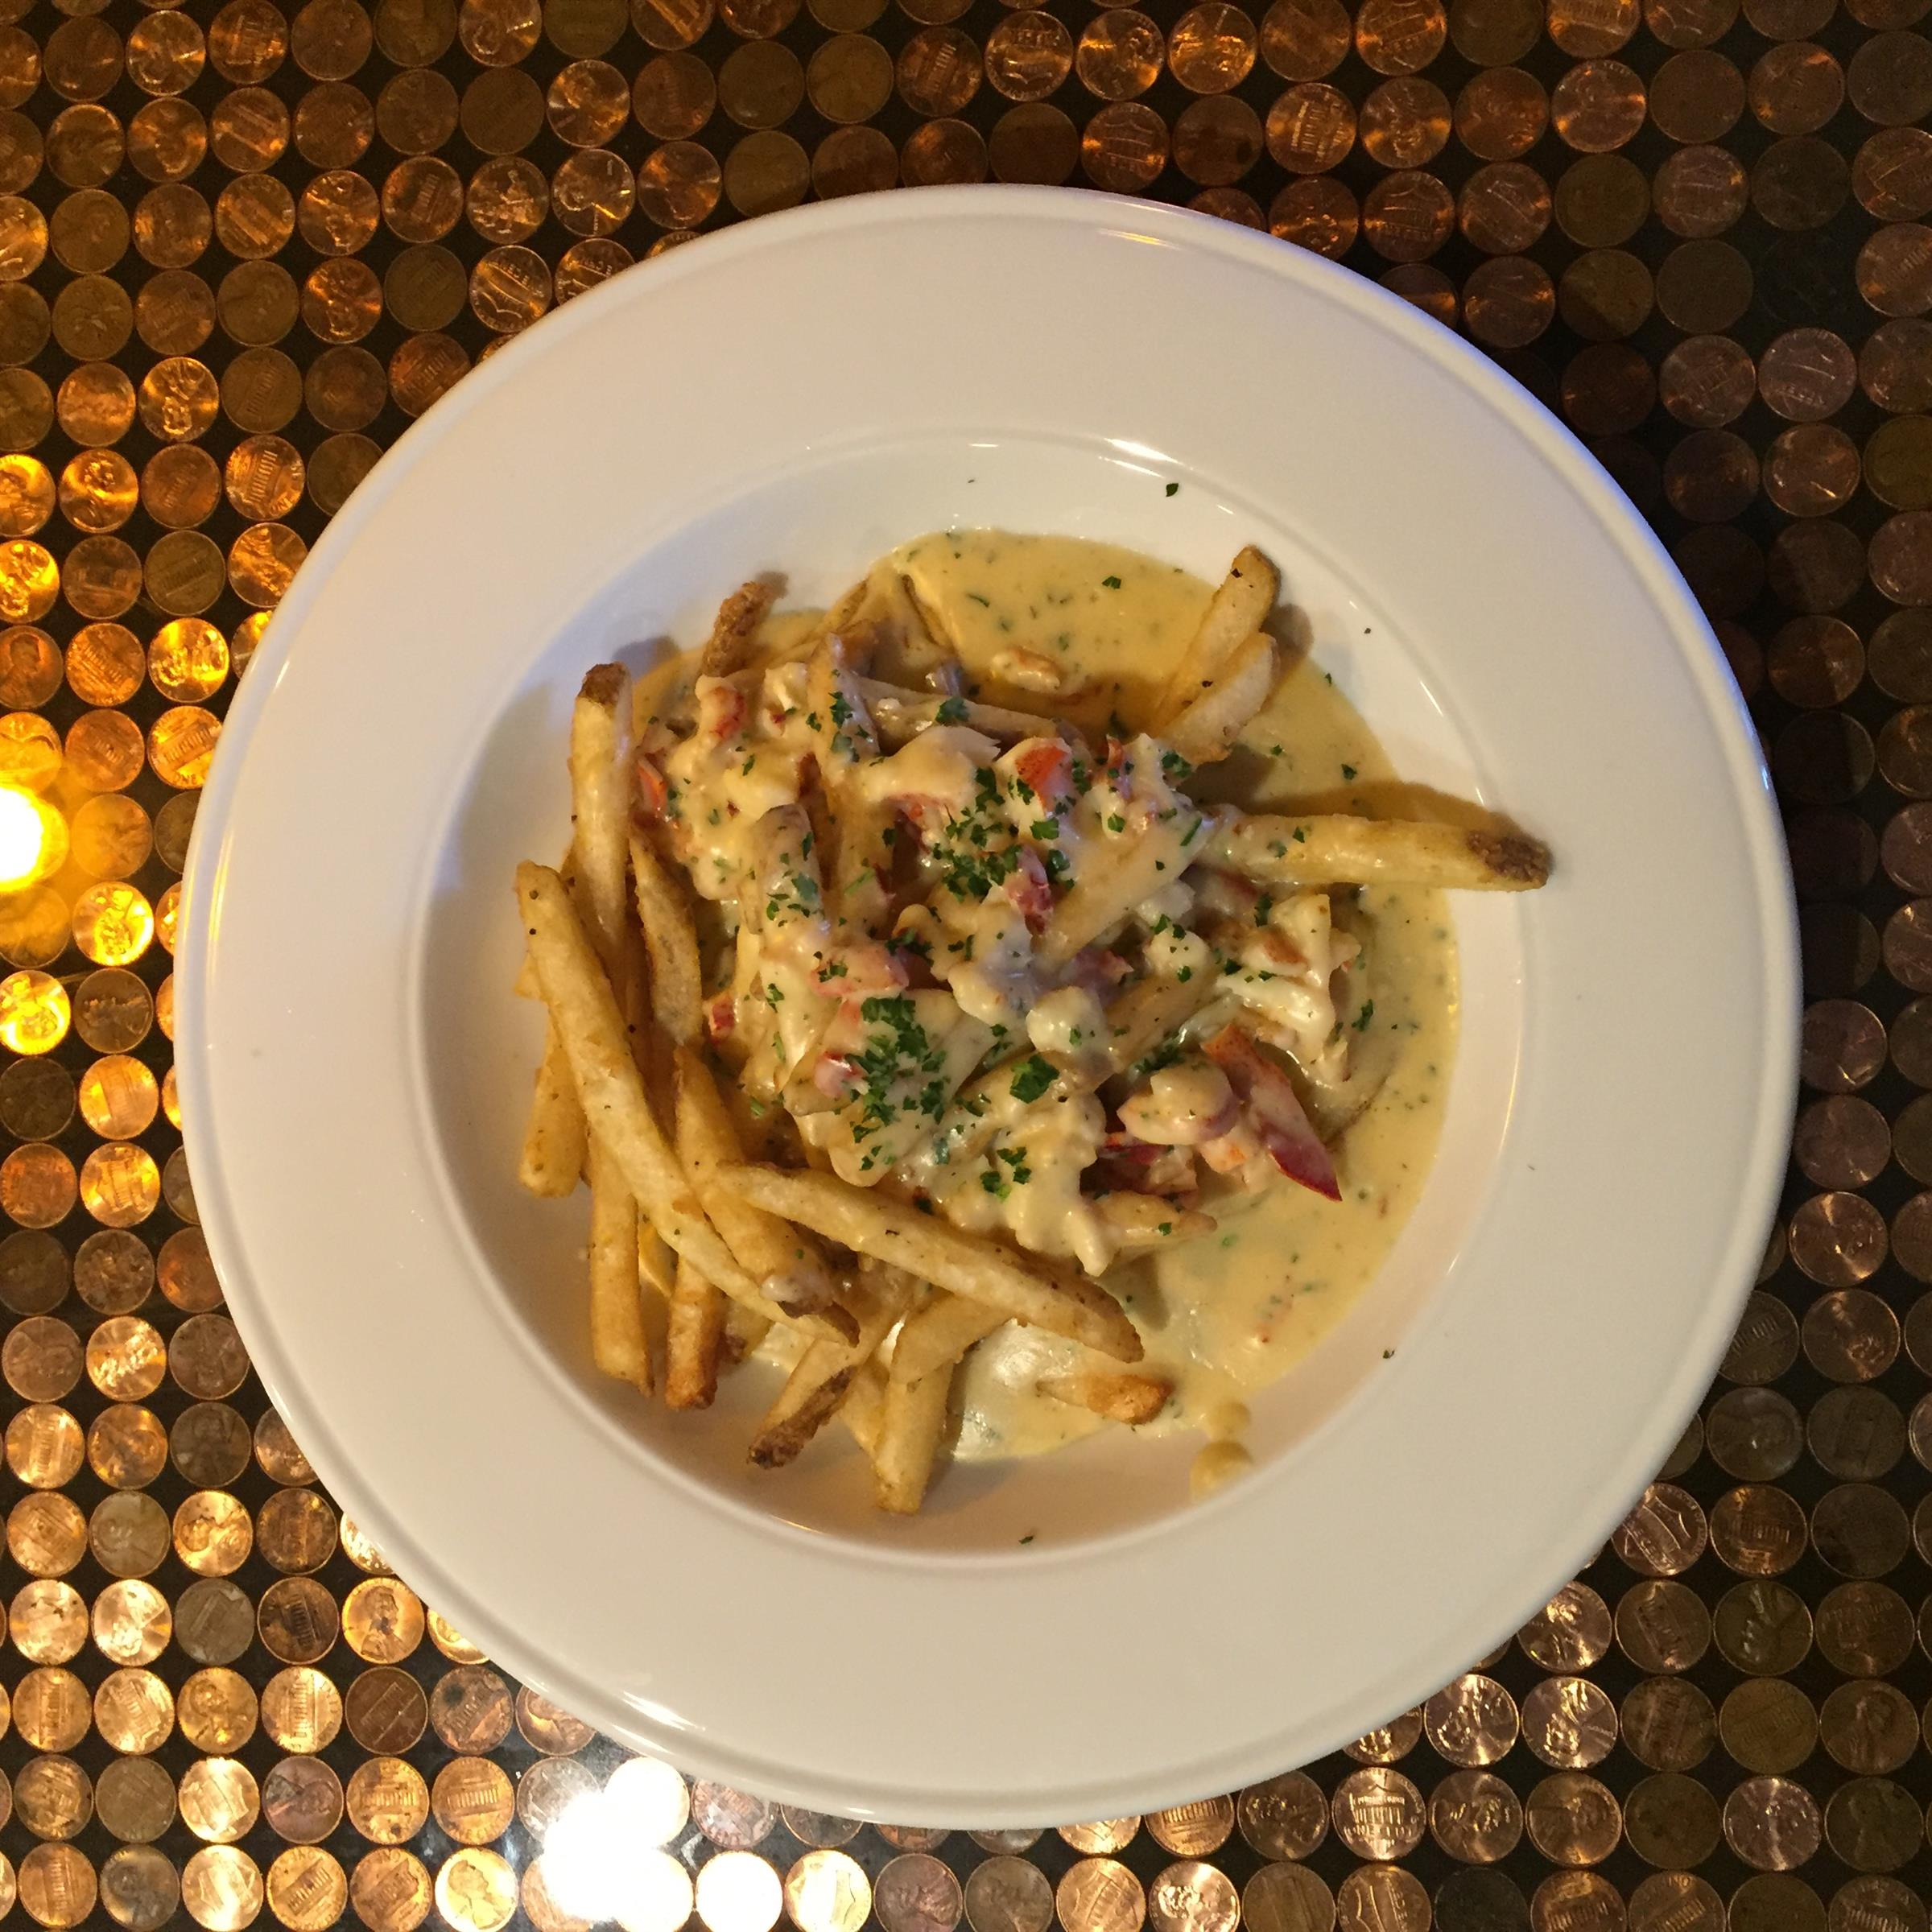 Lobsta fries. Maine lobster in a chipotle cream sauce, served on a bed of our crispy french fries.